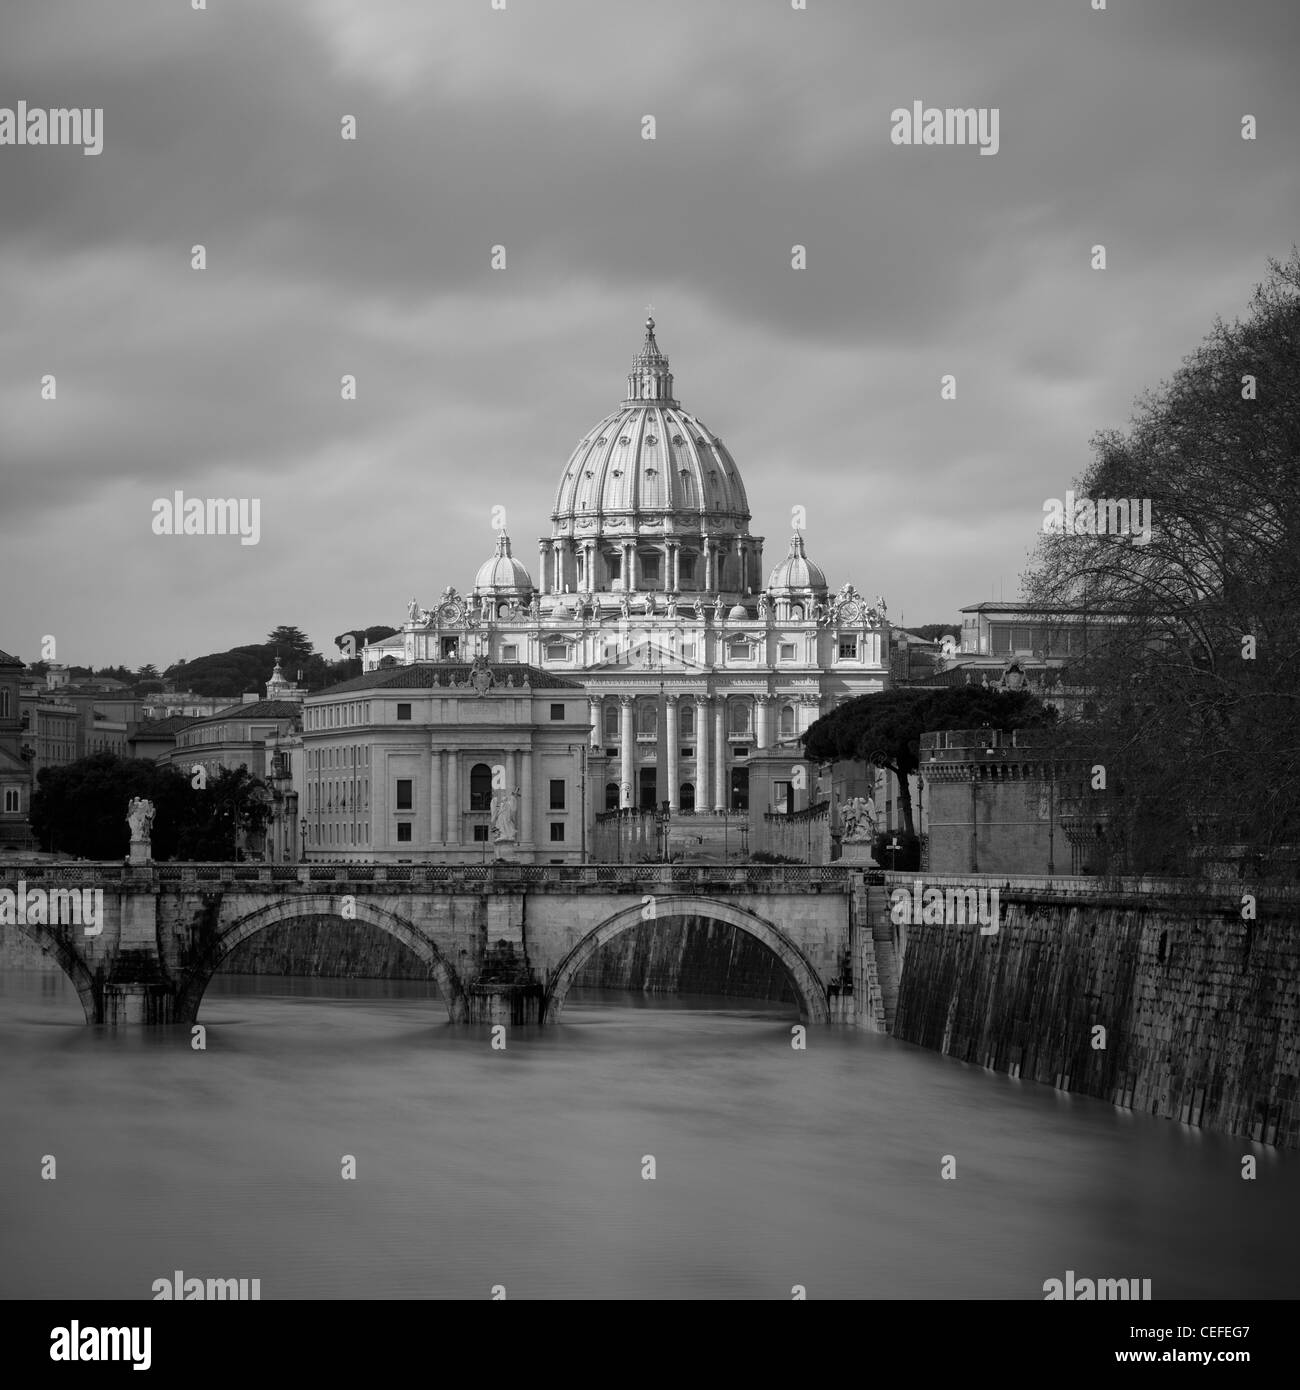 St Peter's Basilica and river - Stock Image